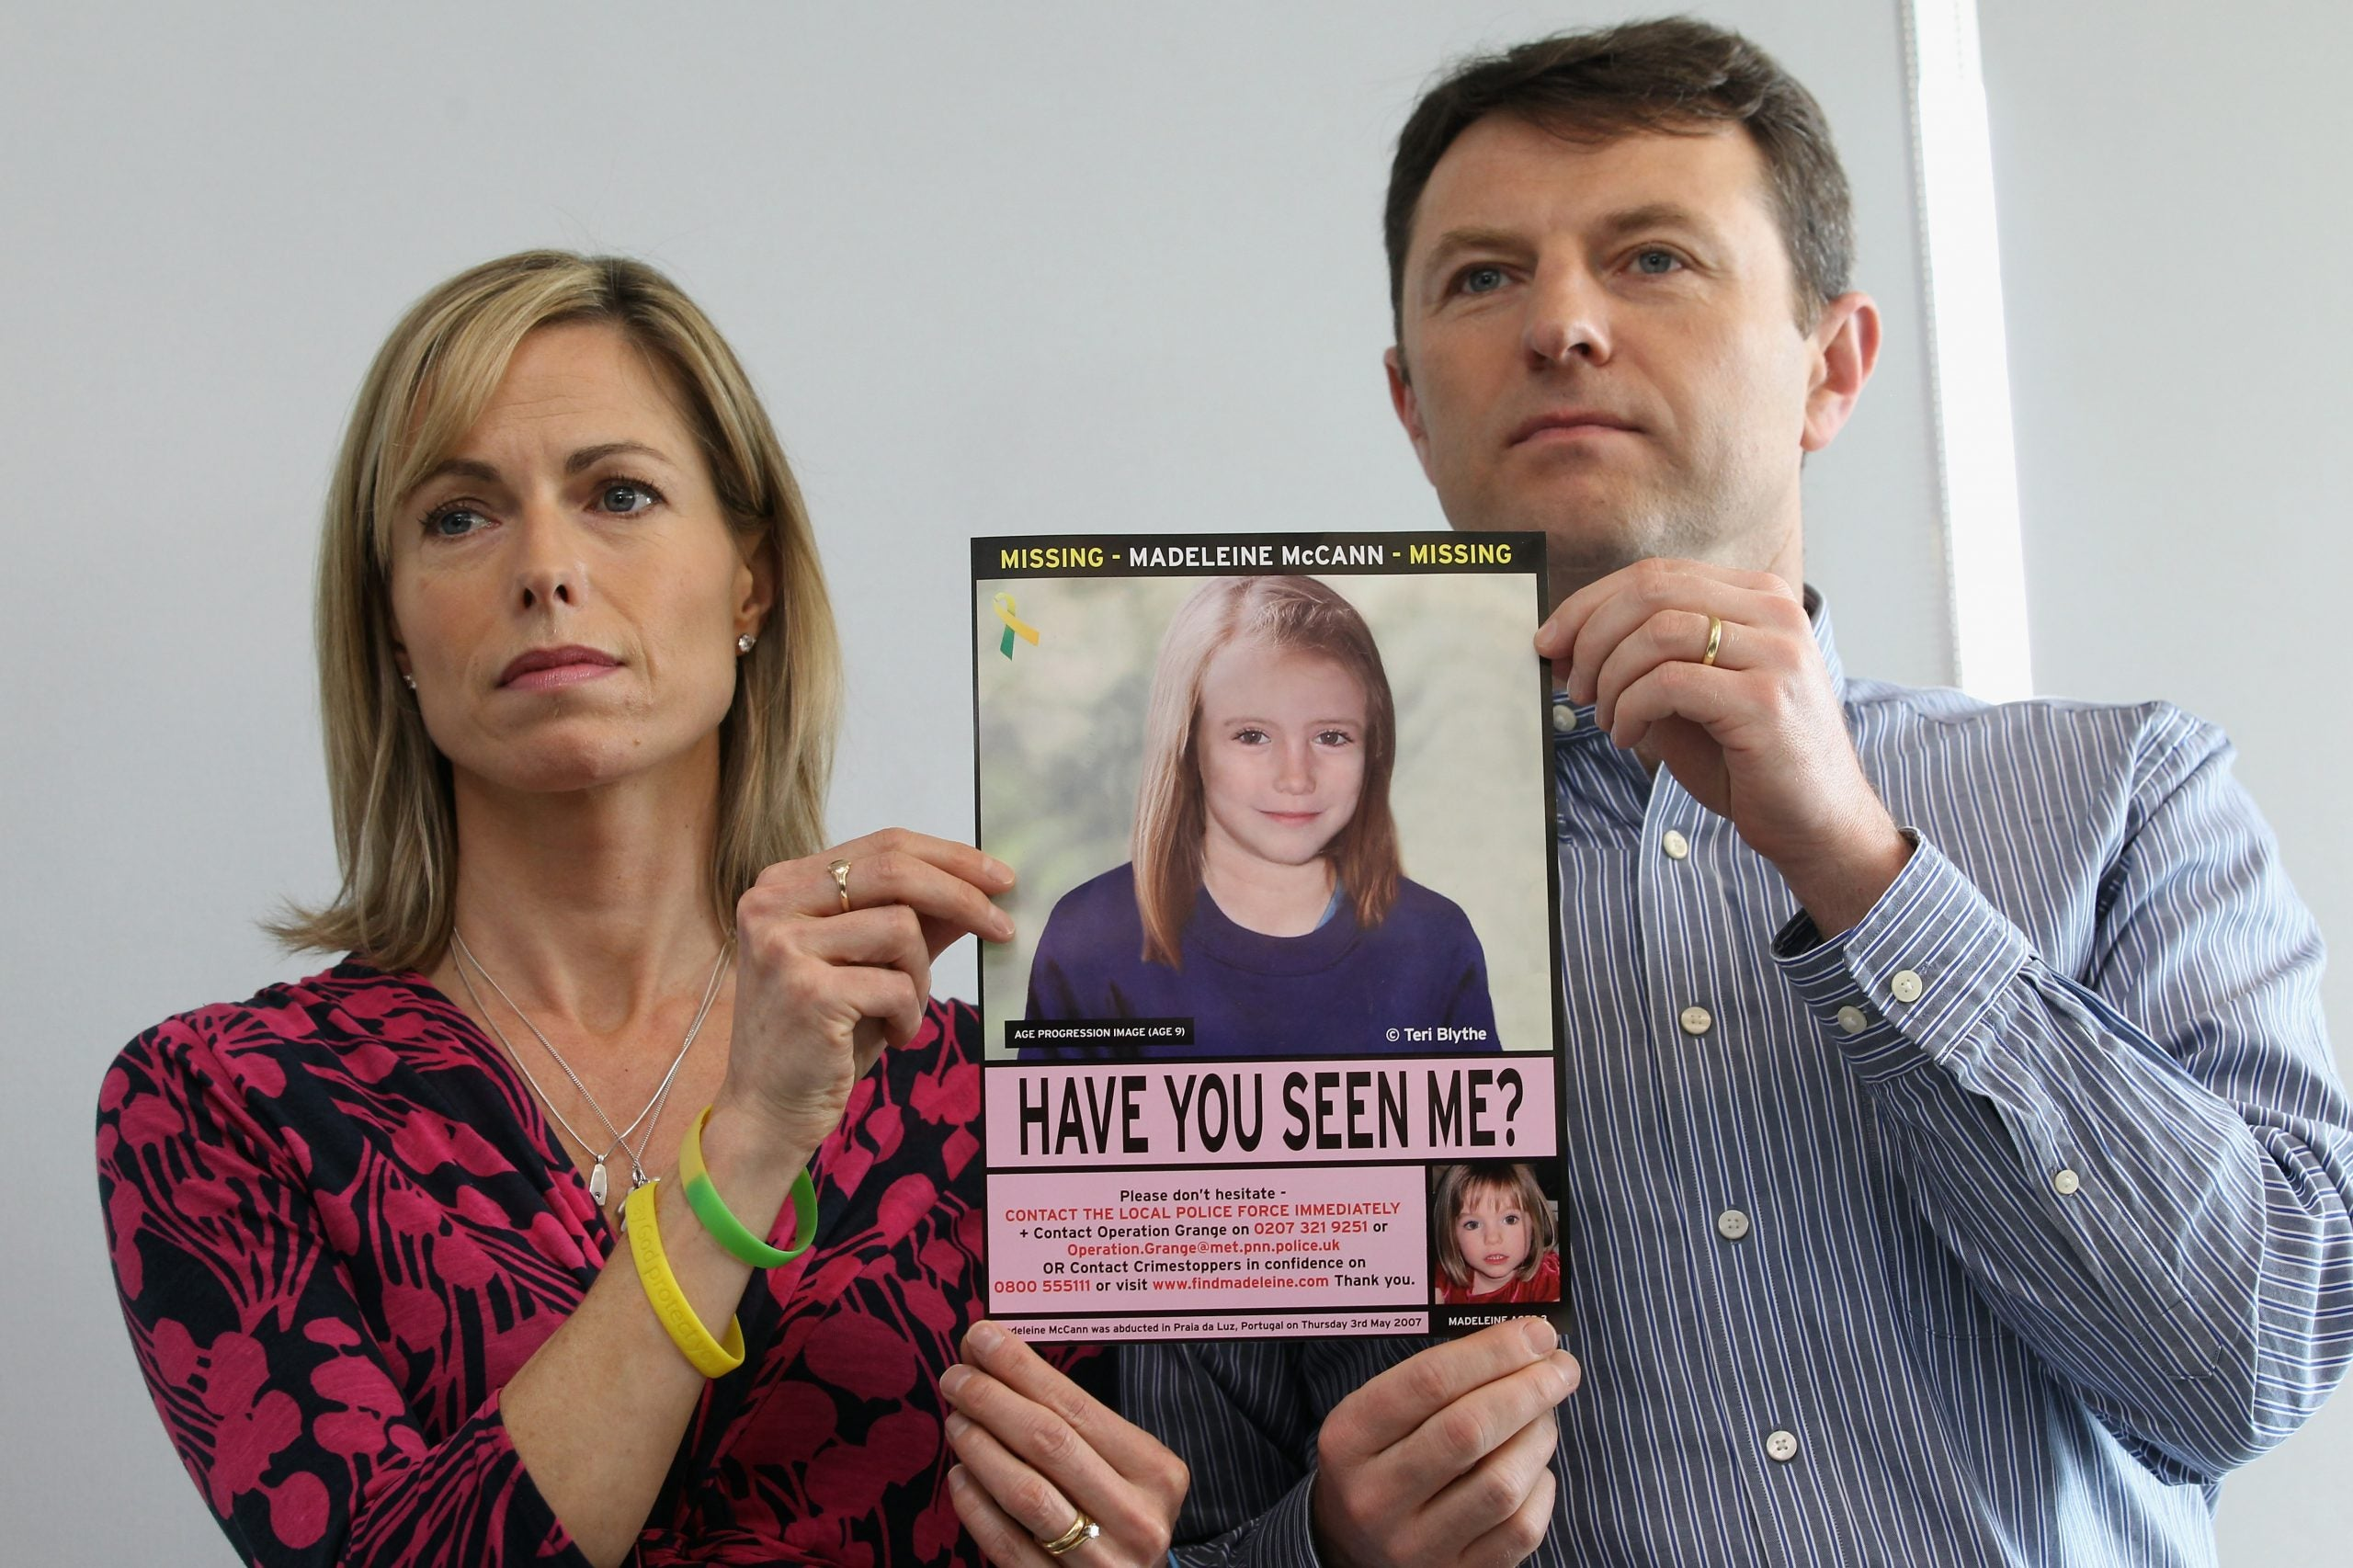 Madeleine McCann is back on front pages. Why does our media give this sad story so much space?